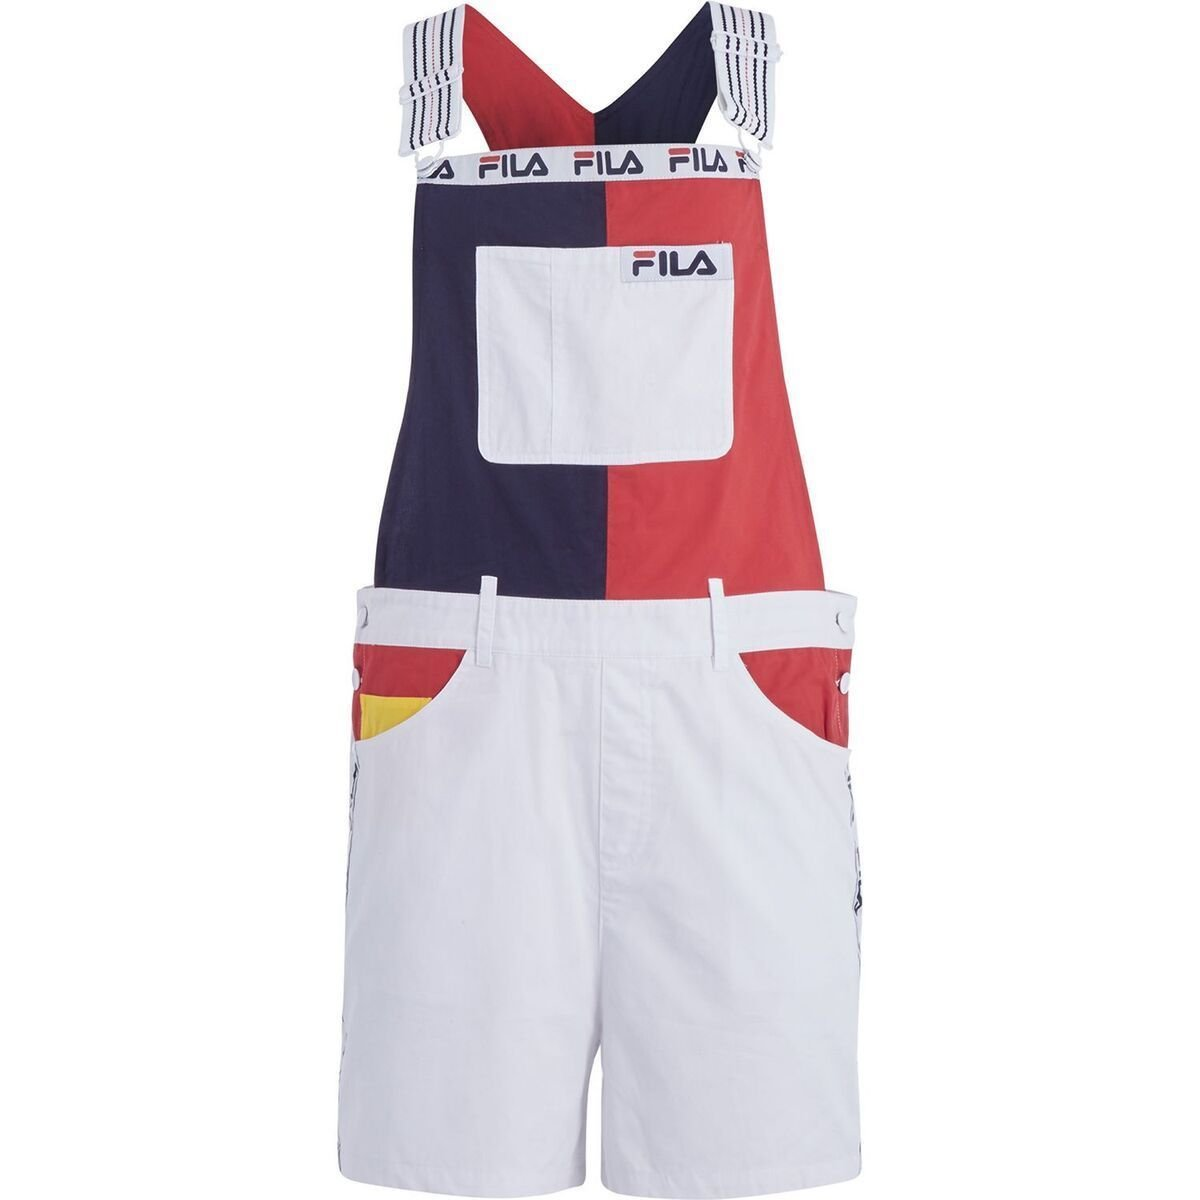 Fila Women's Girls Colour Block Printed Dungarees/Shorts